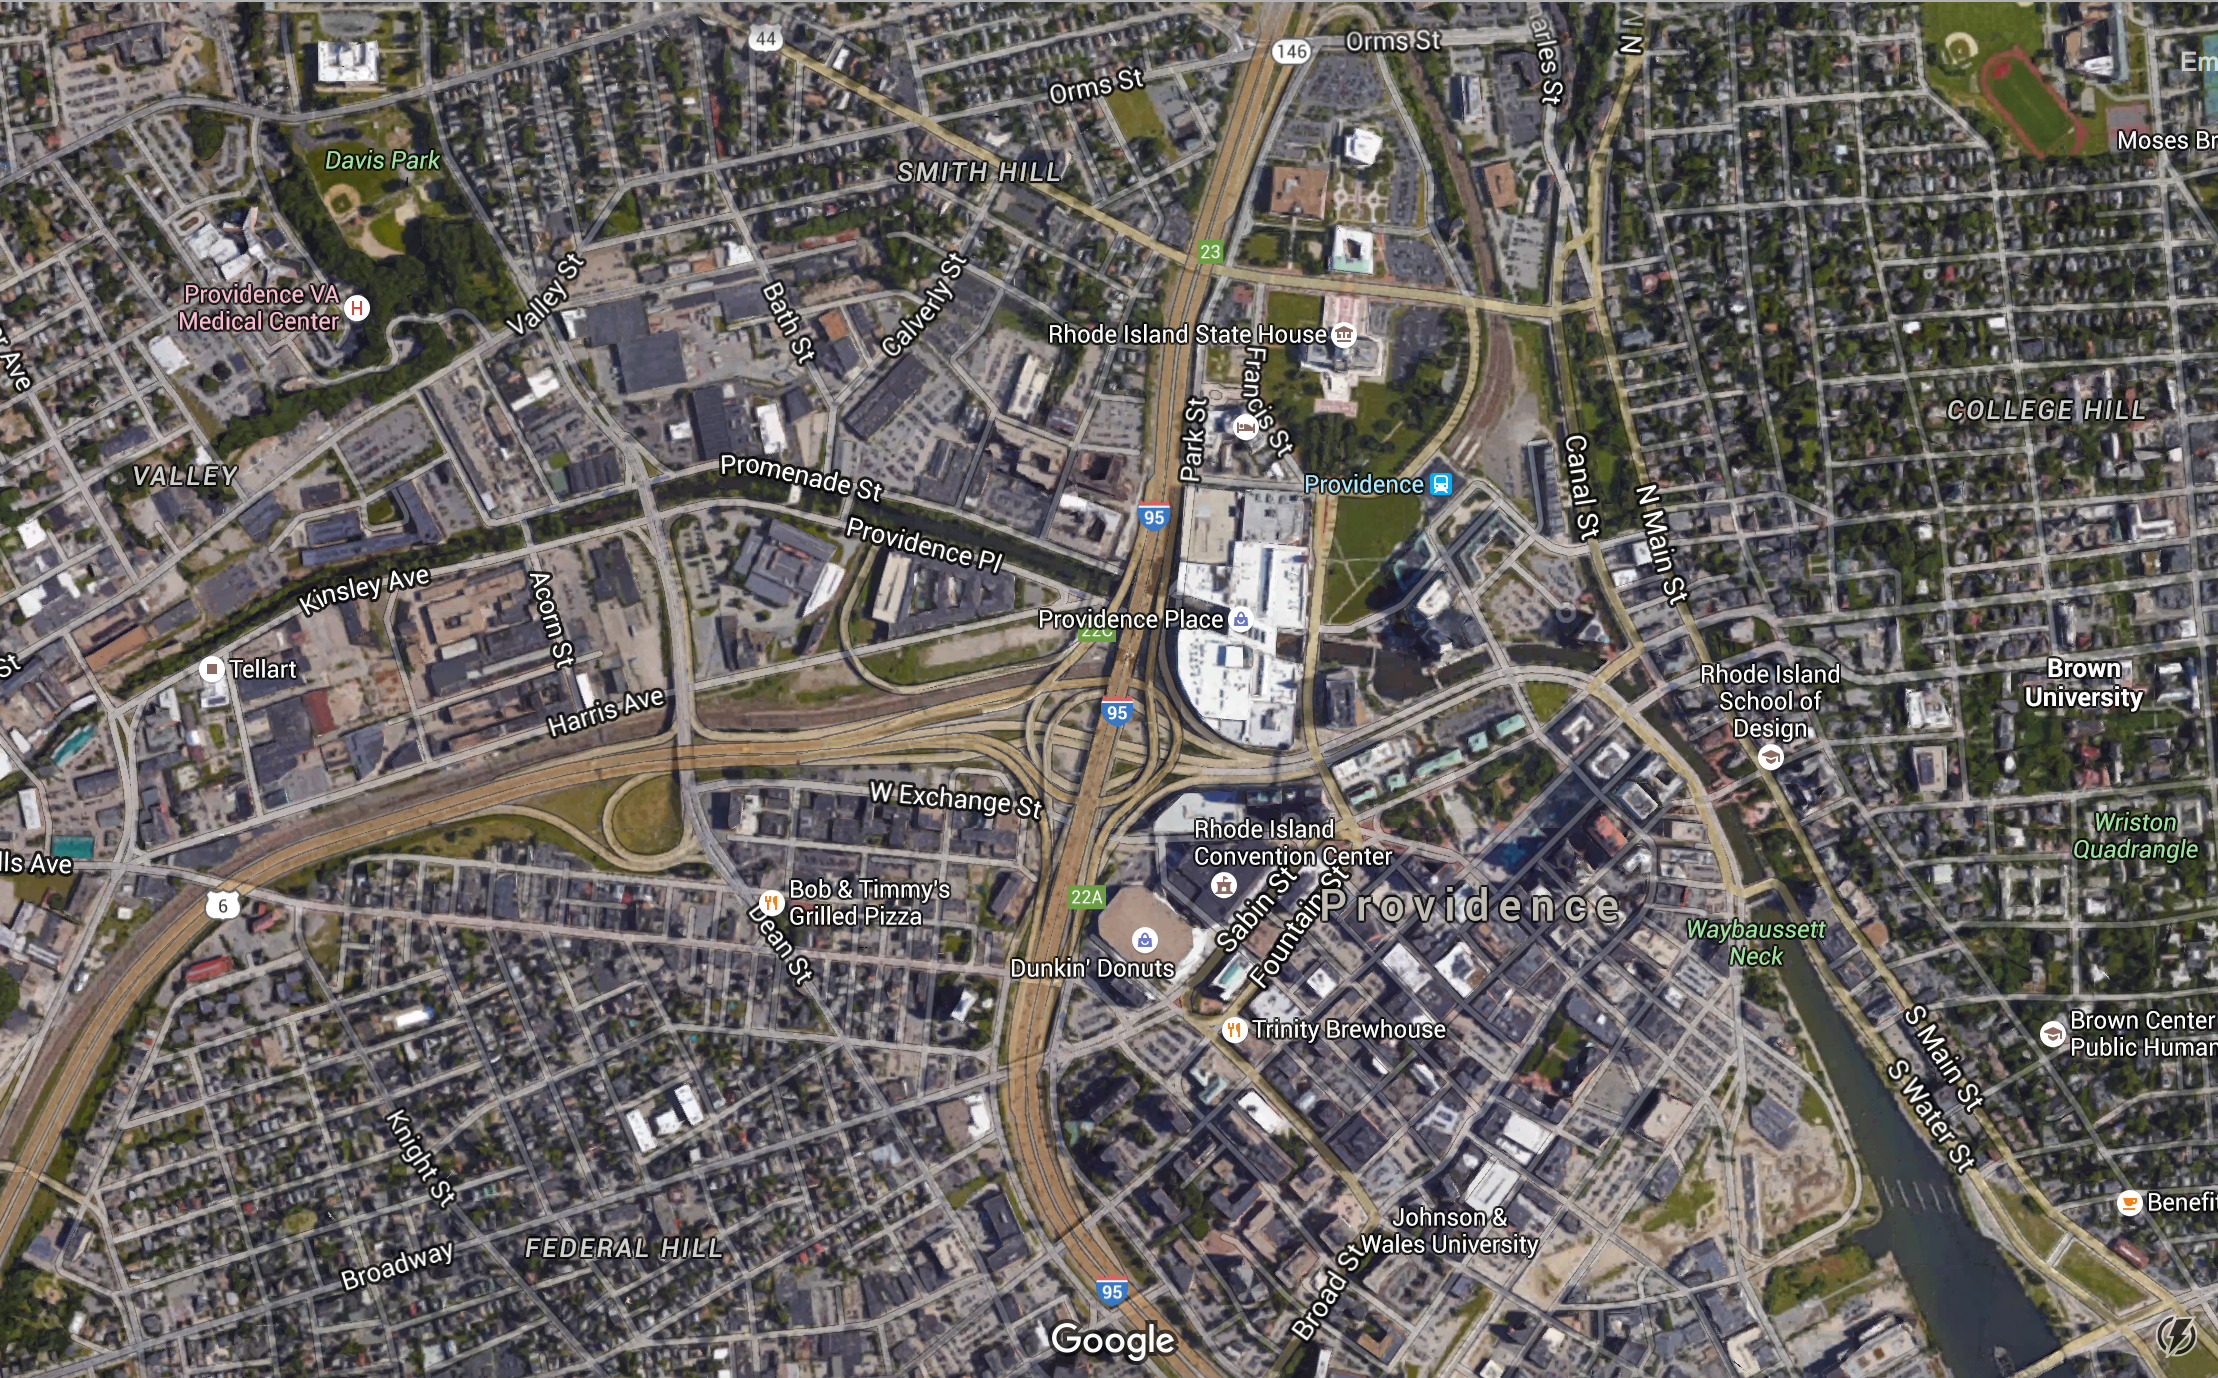 The area in question, pretty much dead center of Providence.